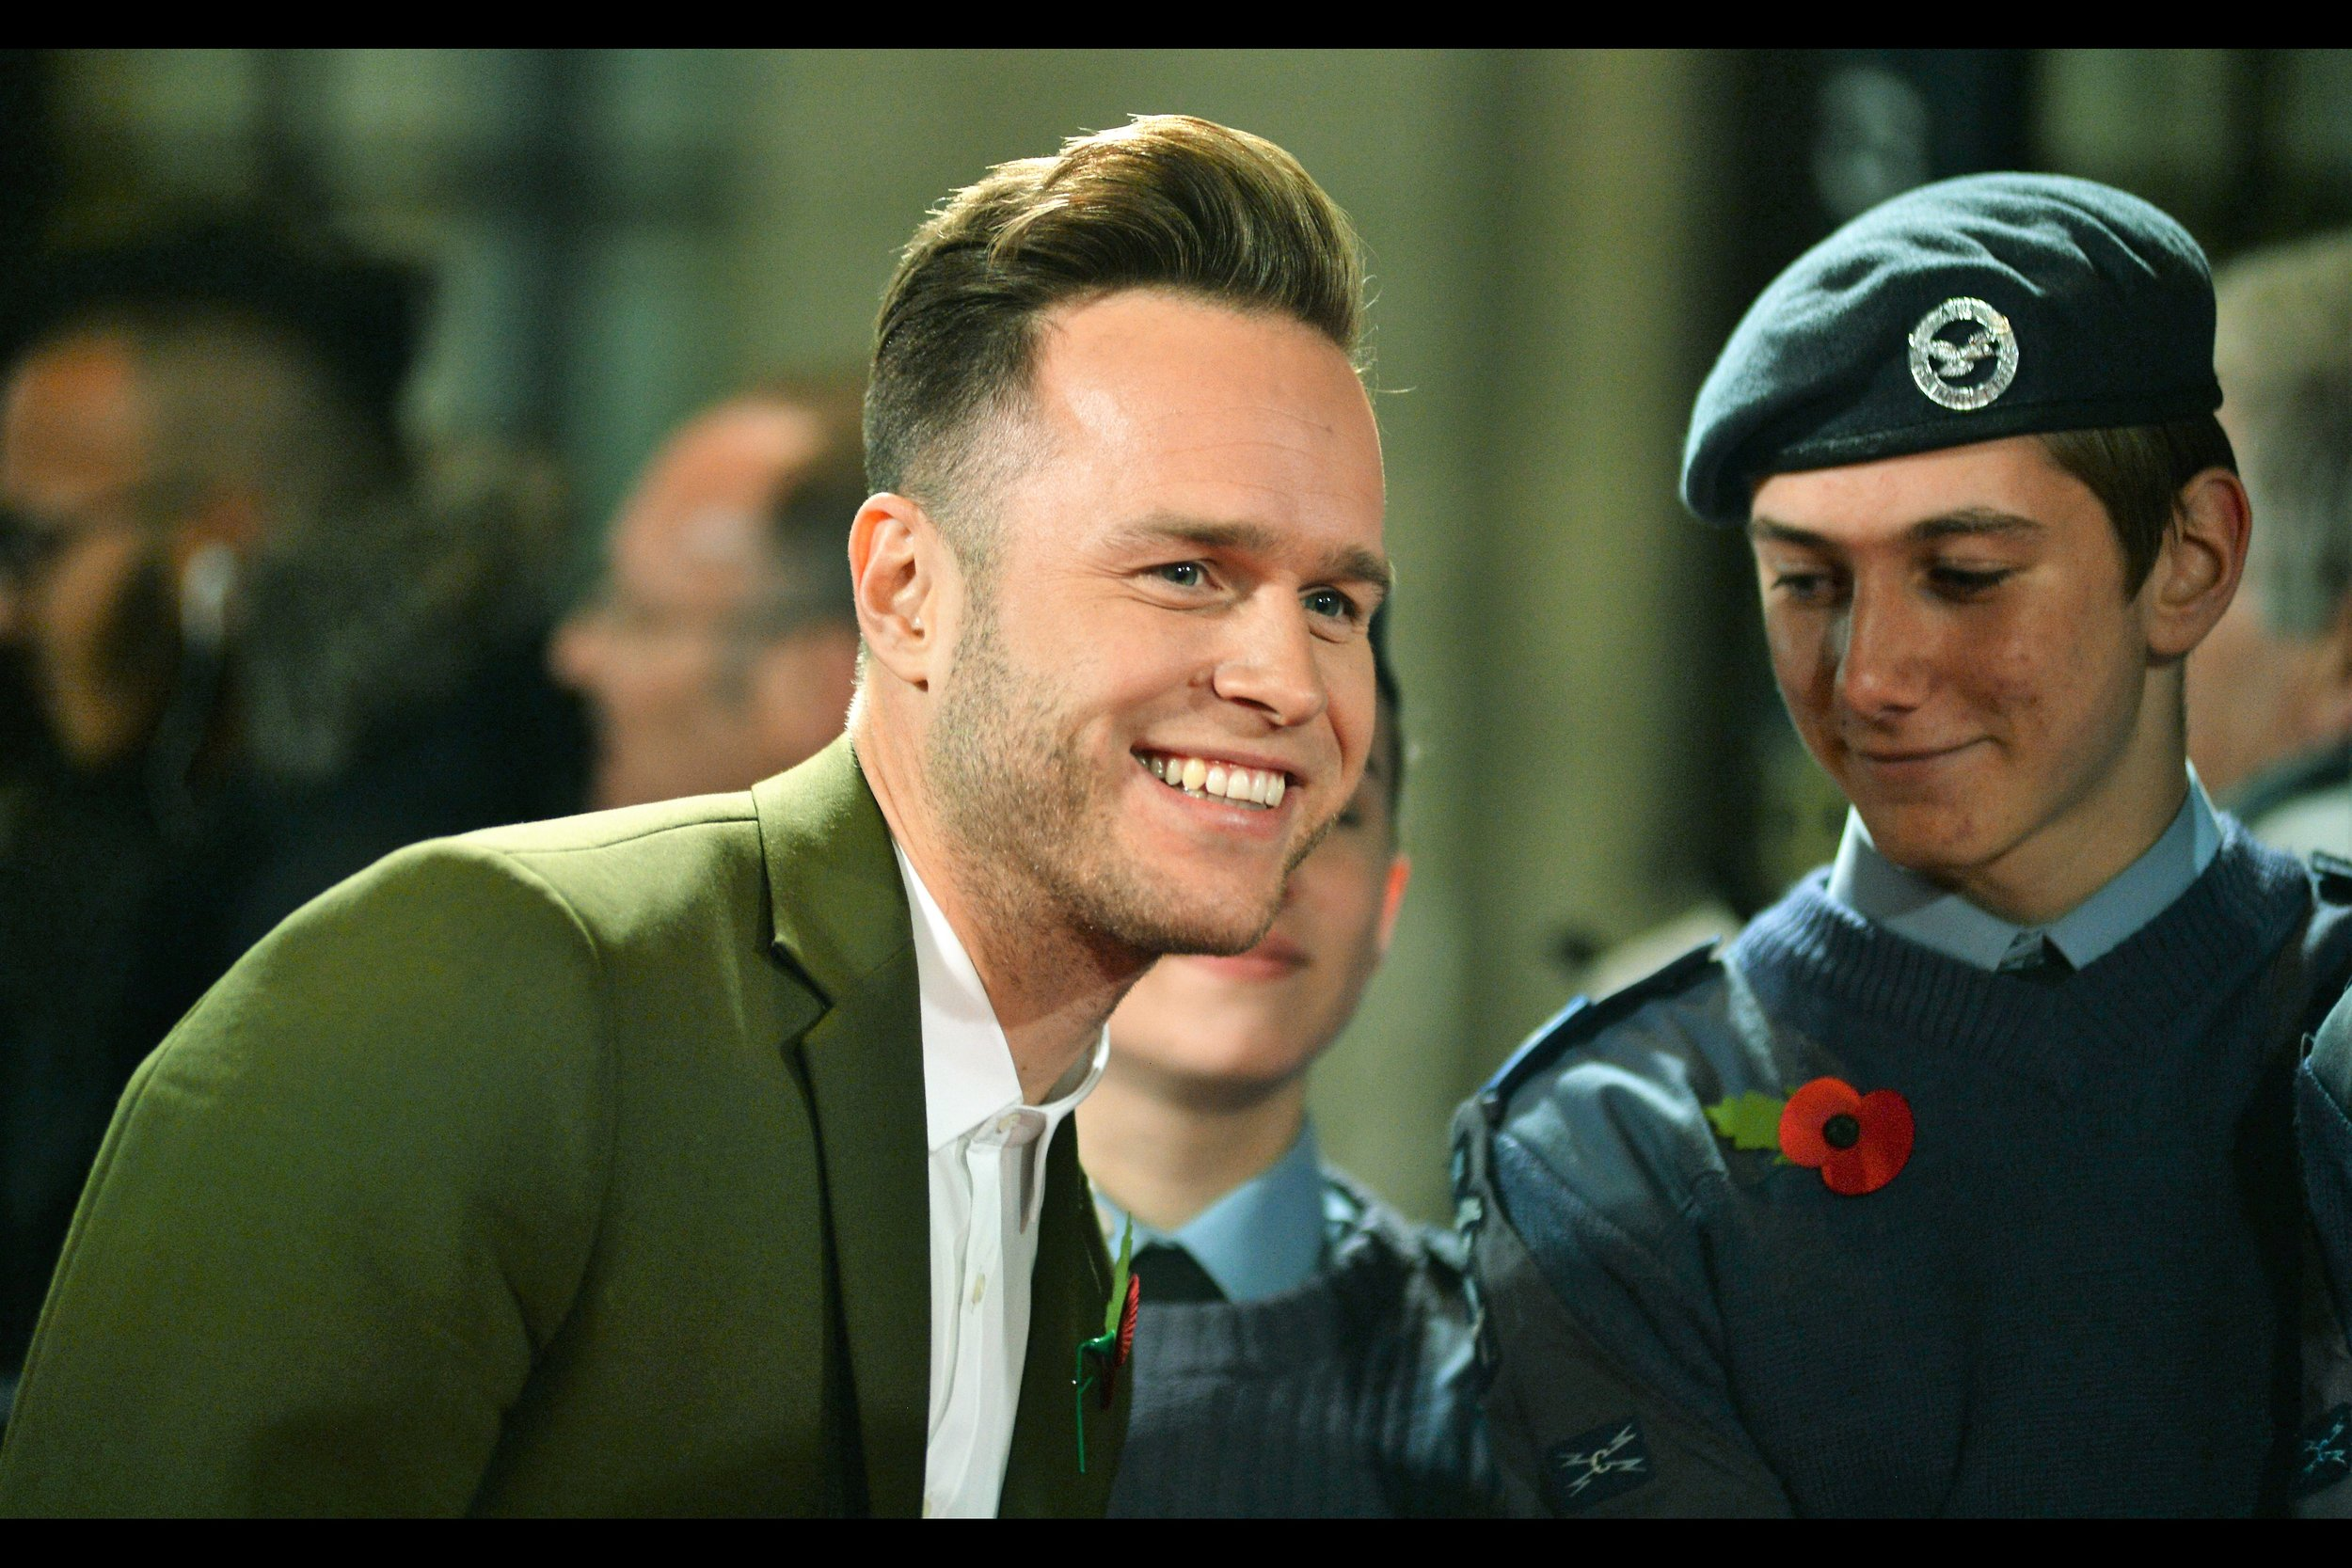 """""""It's not hair receeding, it's brain advancing""""  (trademark/copyright Australia's Own Dr Karl Kruszelnicki, whose permission I did not gain or seek to use this here) - Olly Murs."""